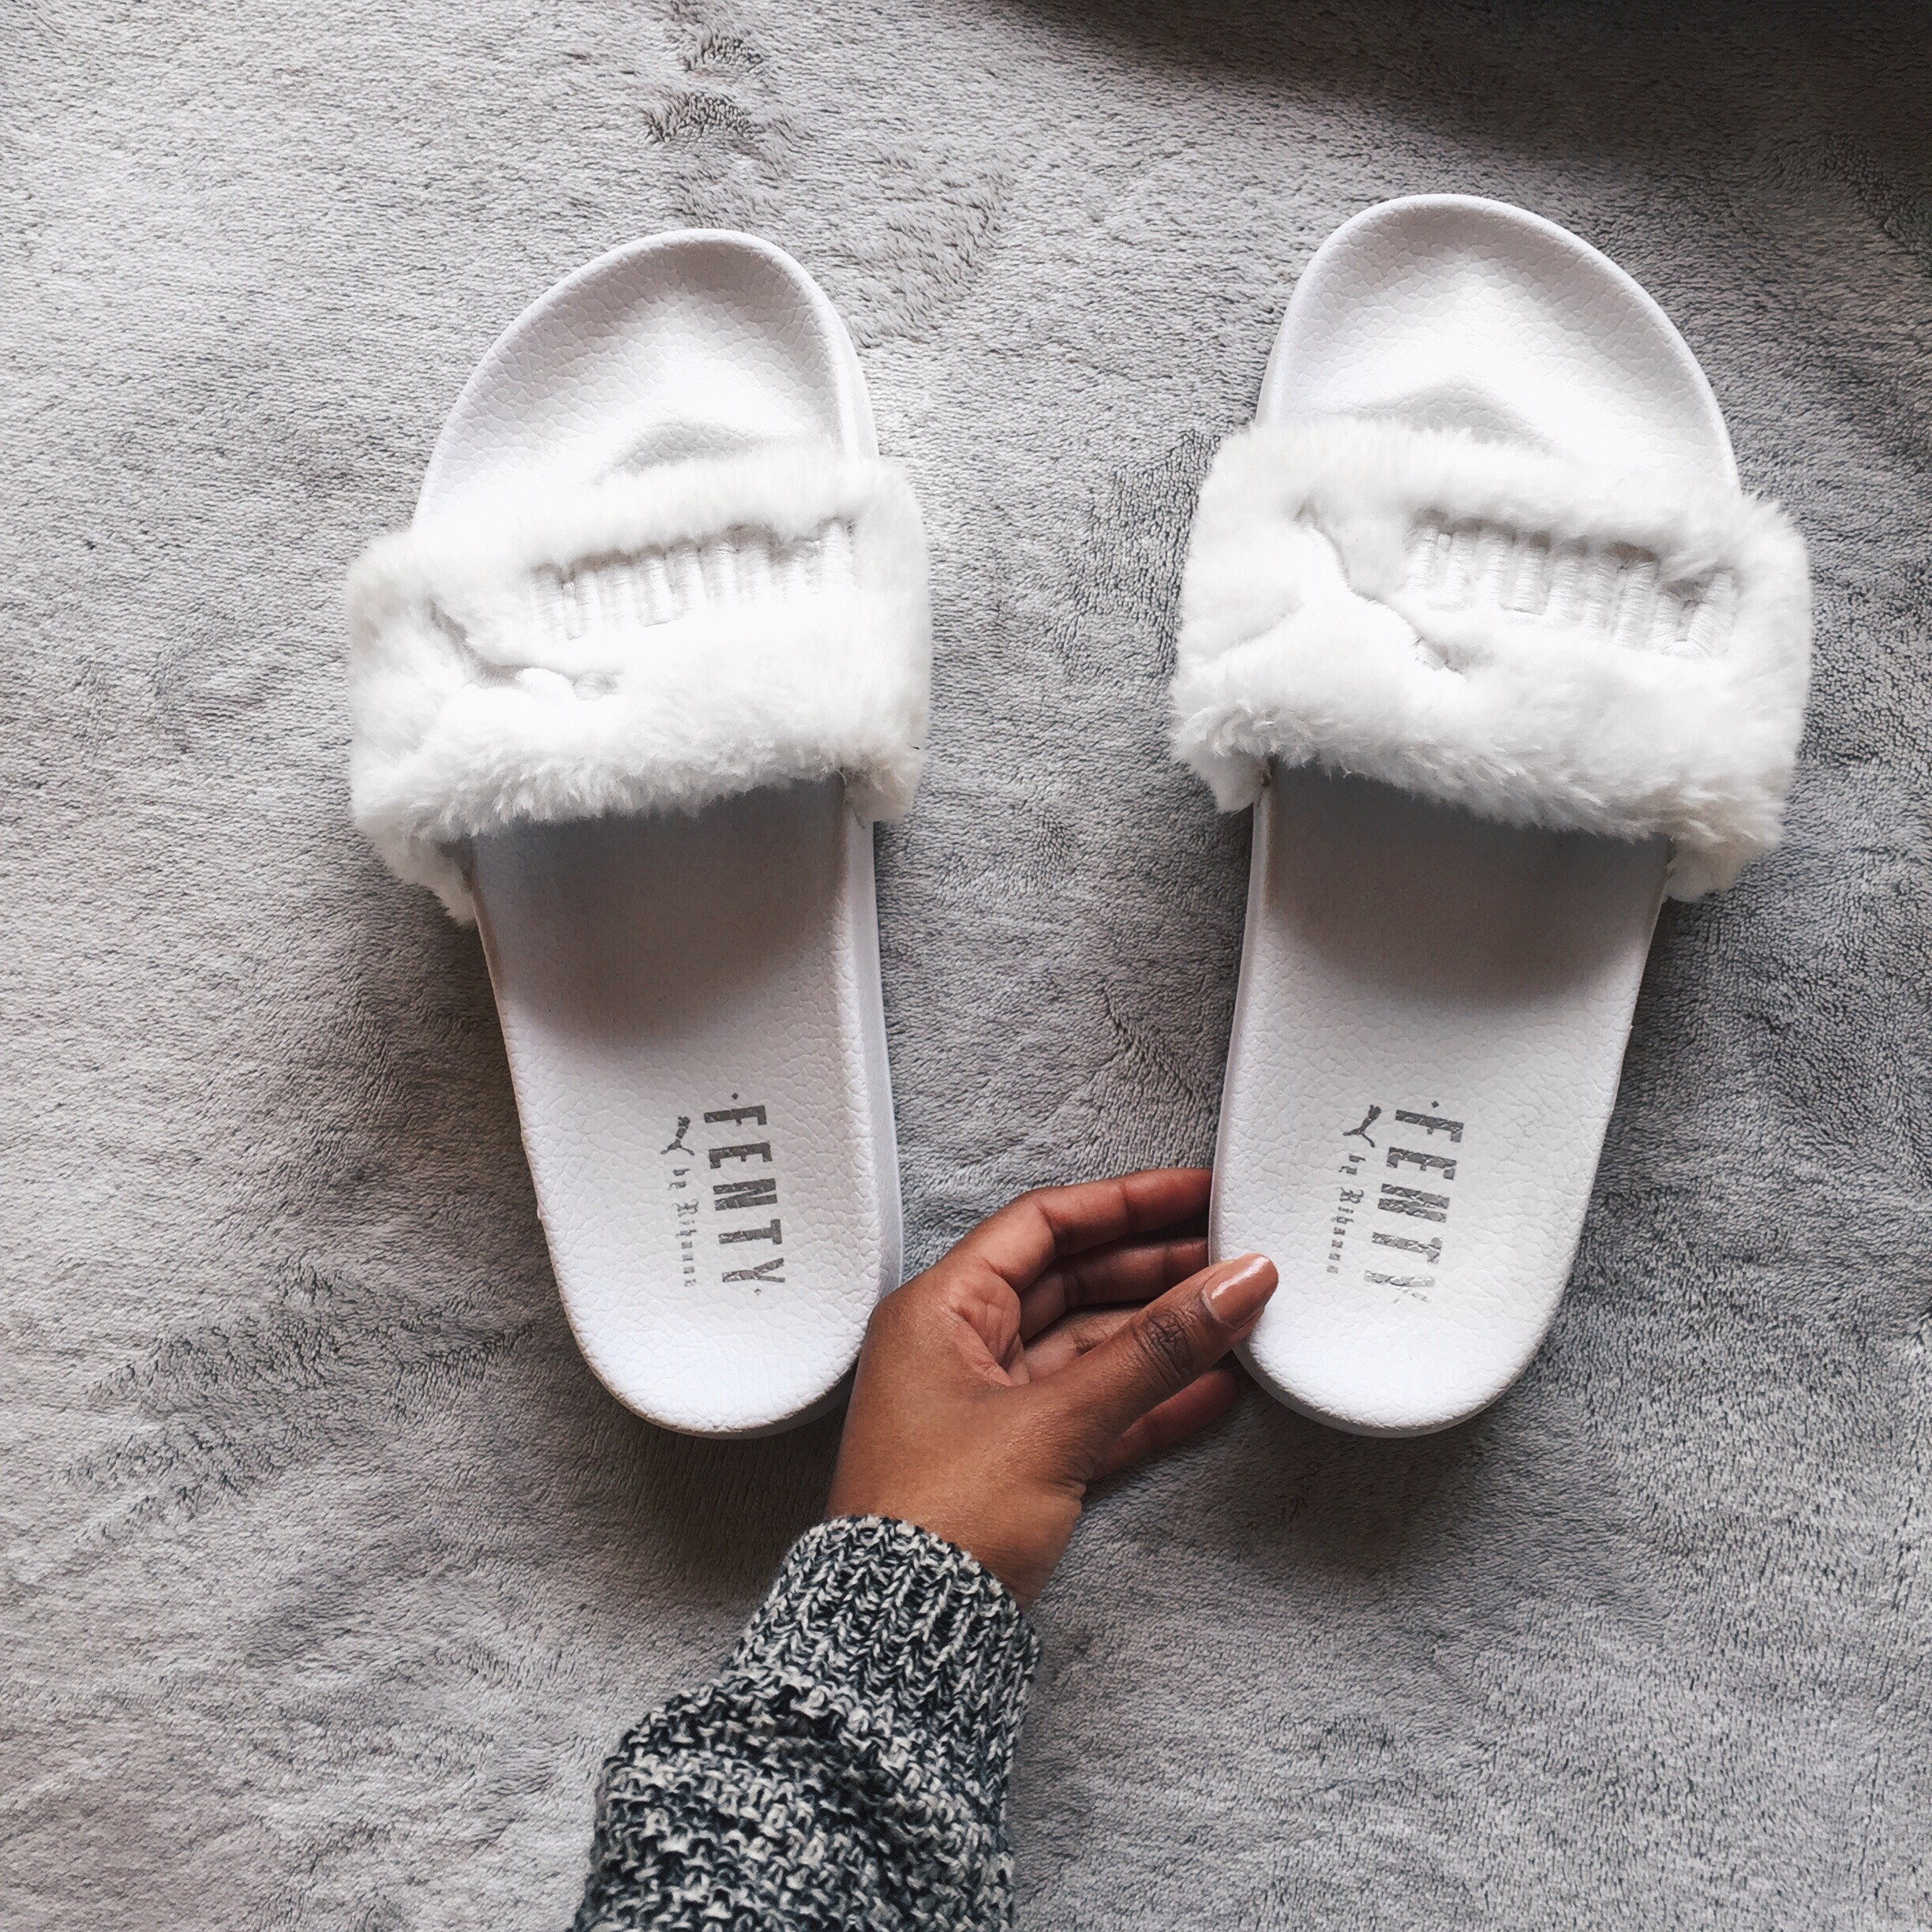 premium selection 2c8c5 7dee1 How To: Clean Your PUMA X Fenty Slides | Sleepless In Soweto